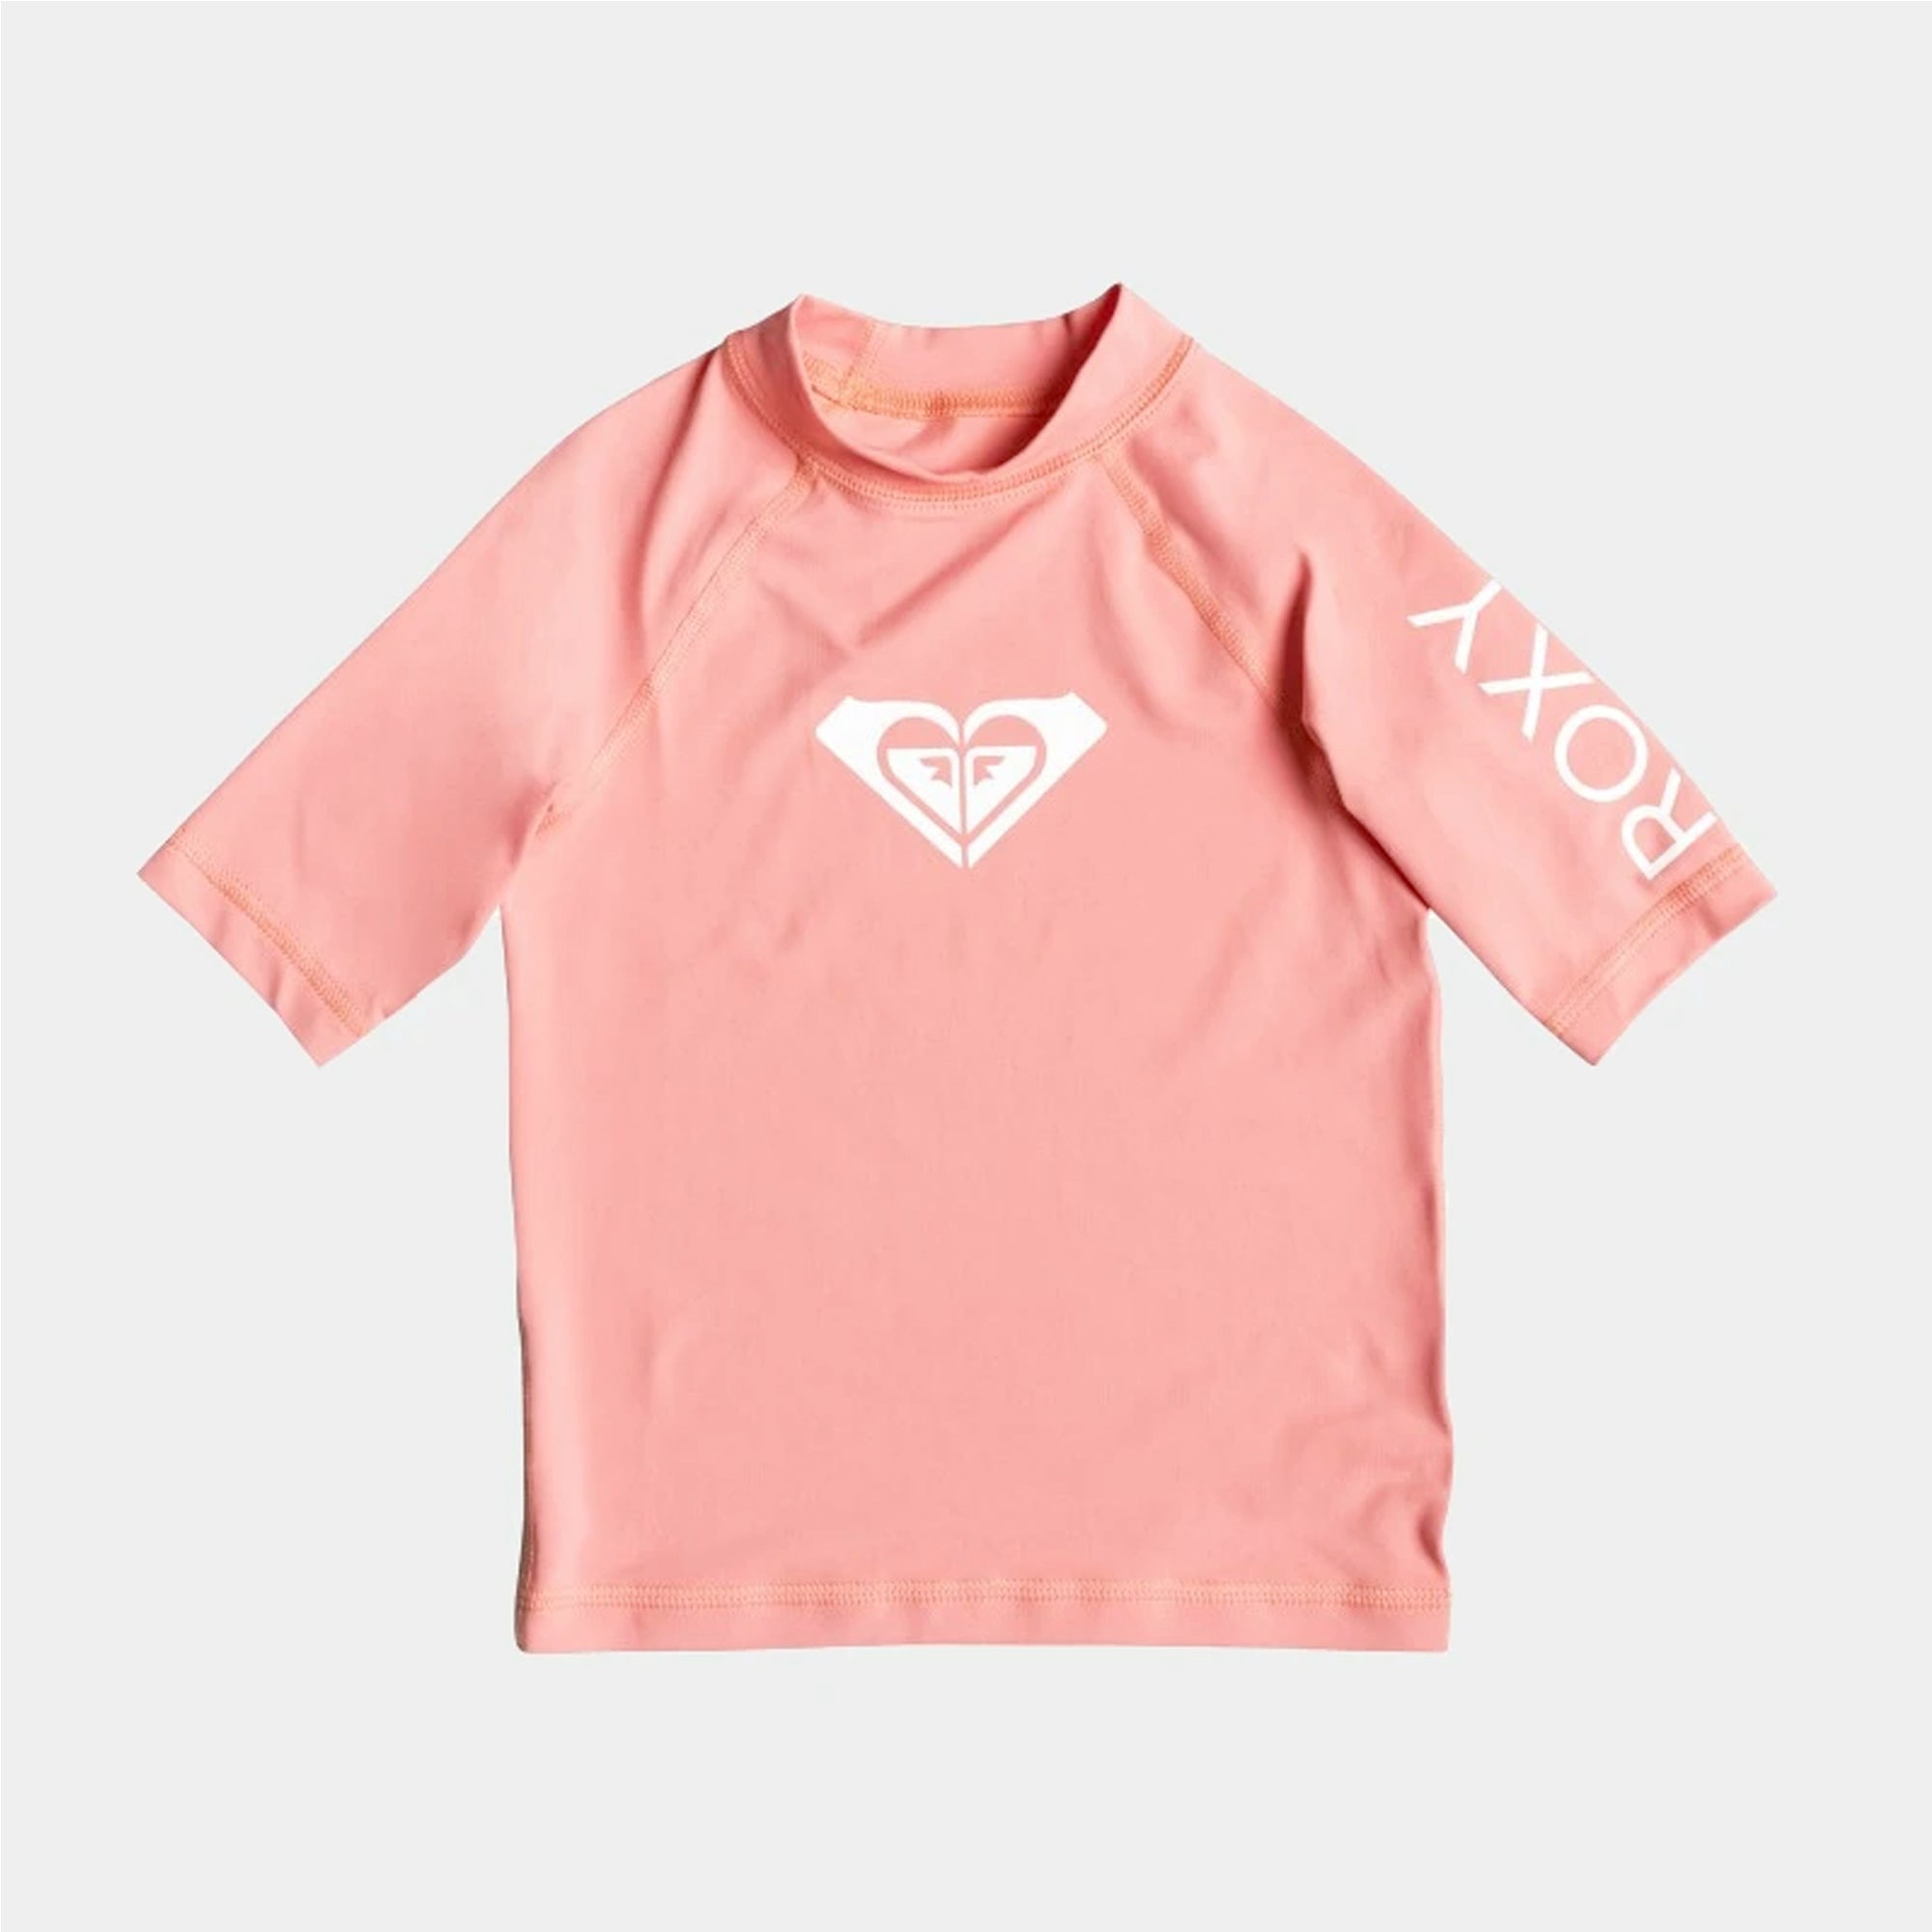 Roxy Whole Hearted Youth Girl's S/S UPF50 Rashguard